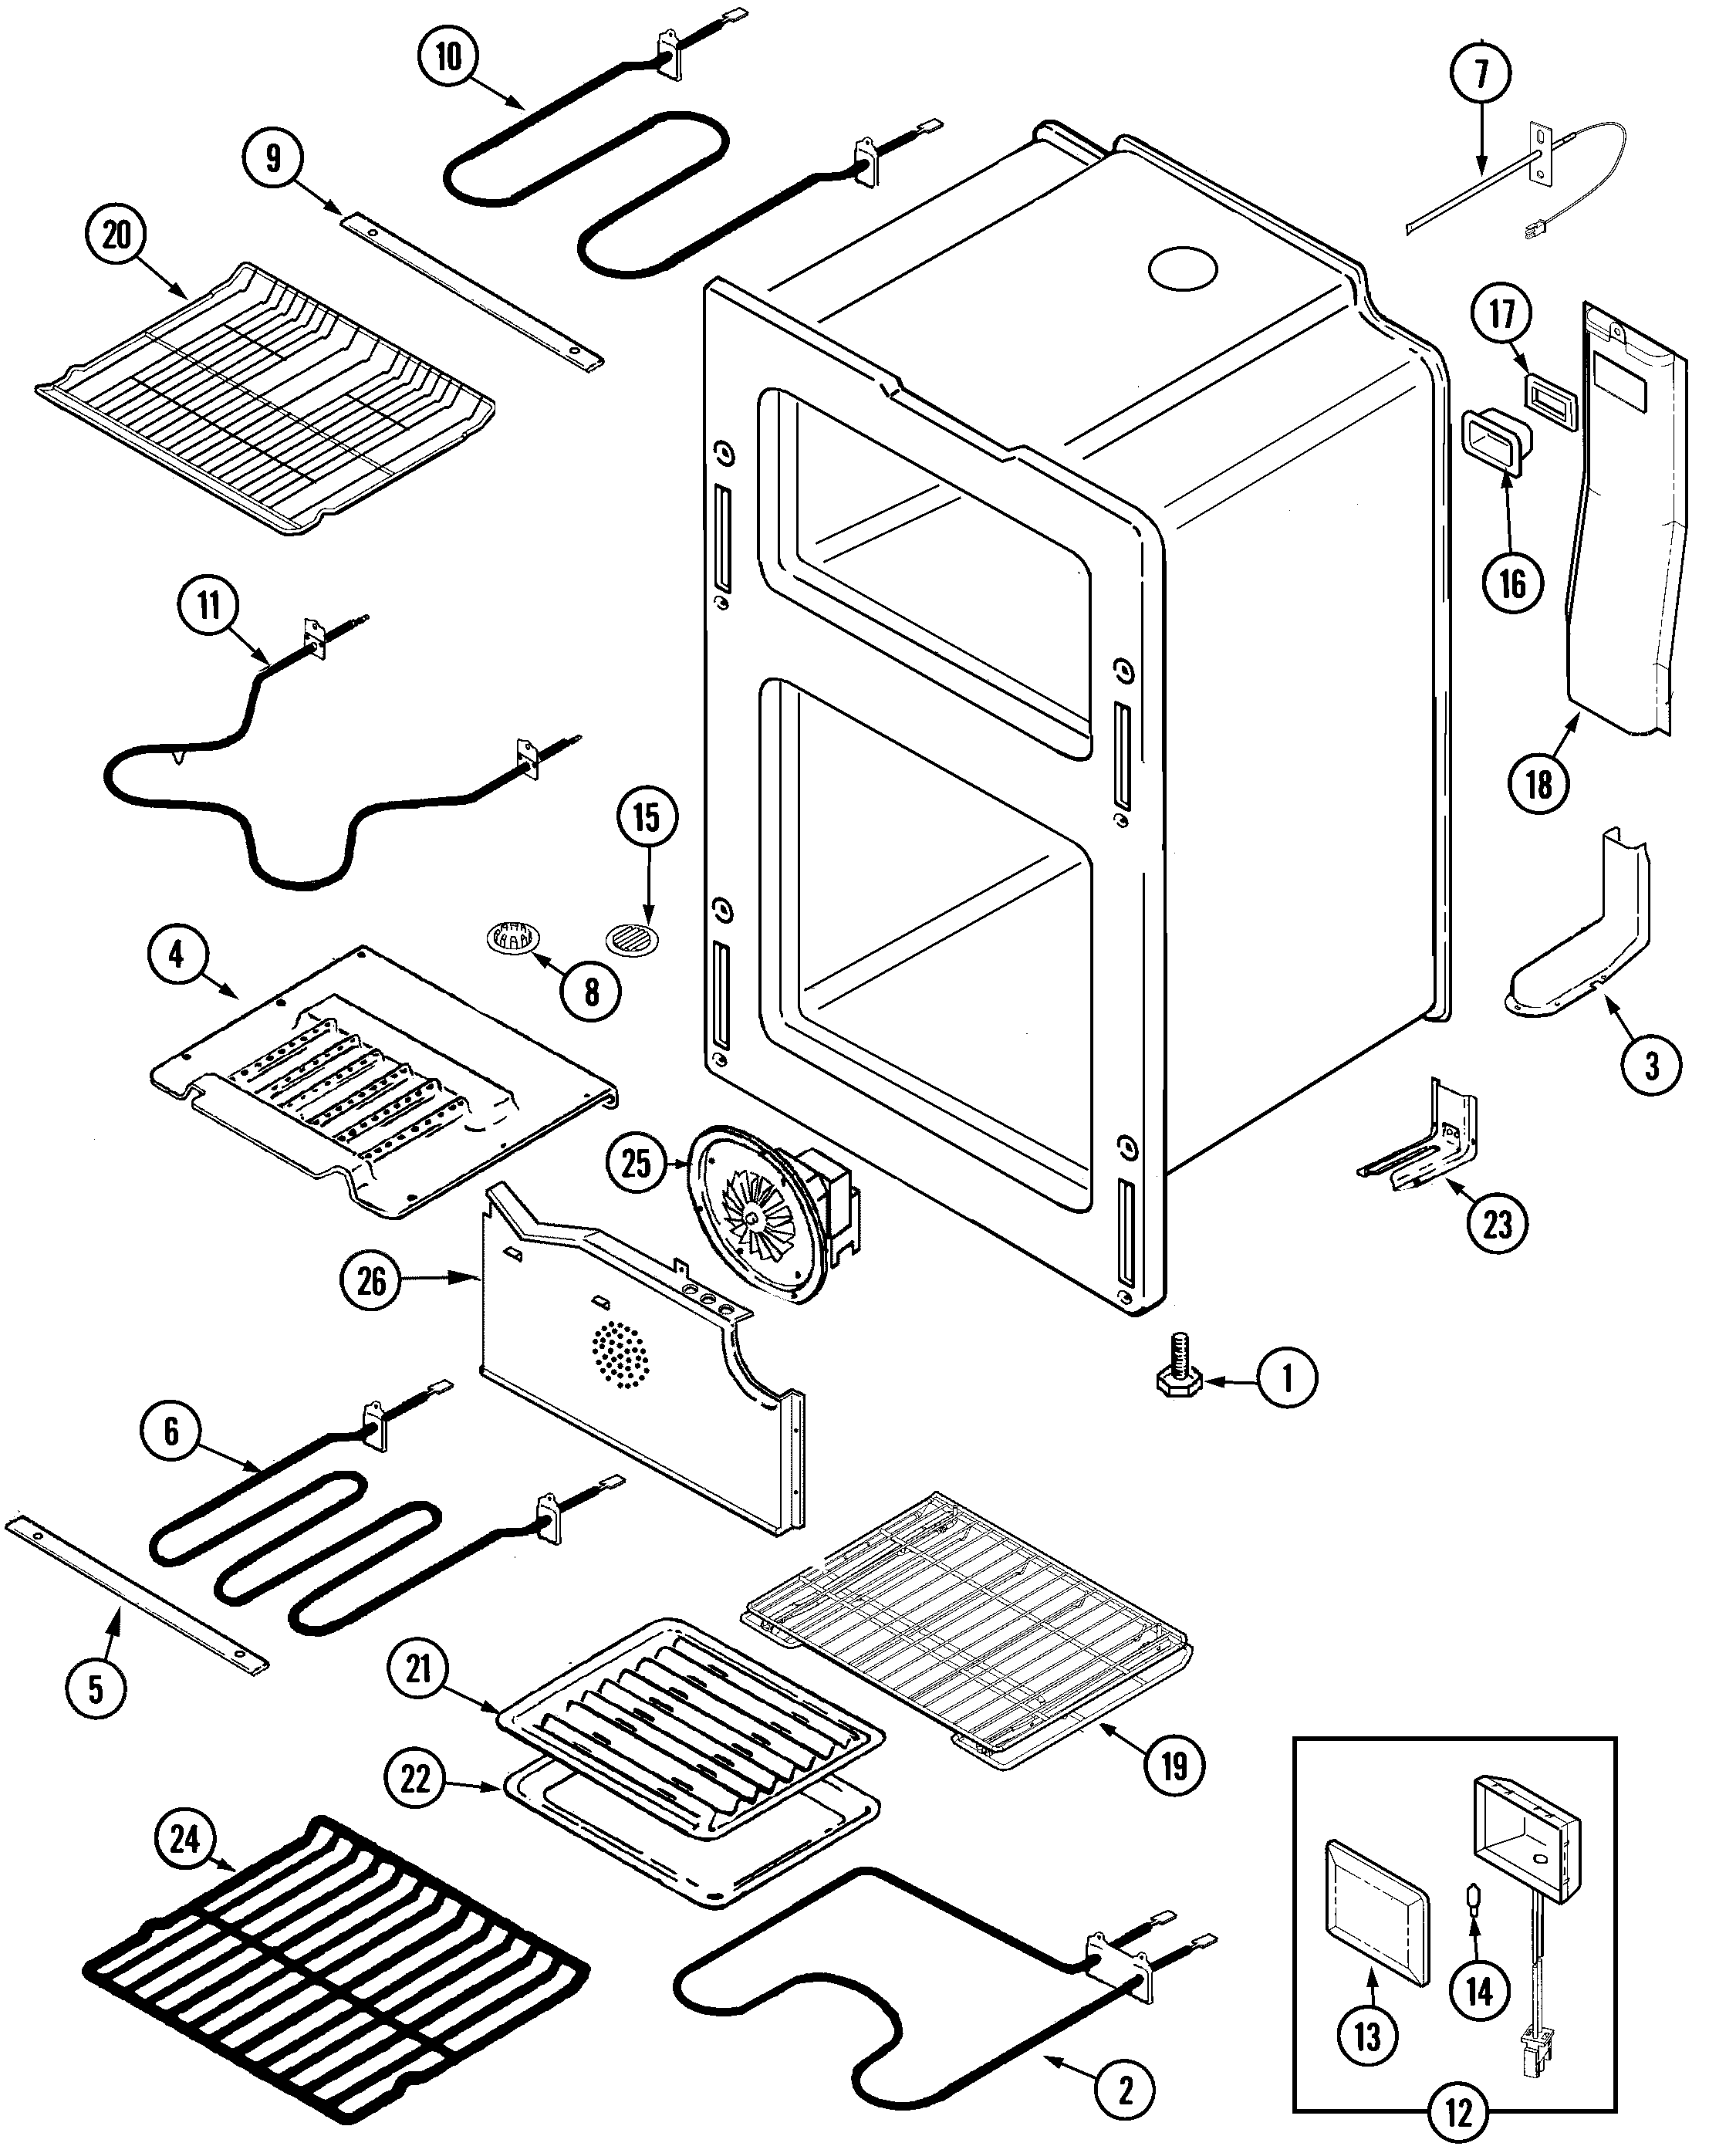 OVEN Diagram & Parts List for Model MER6870AAQ Maytag